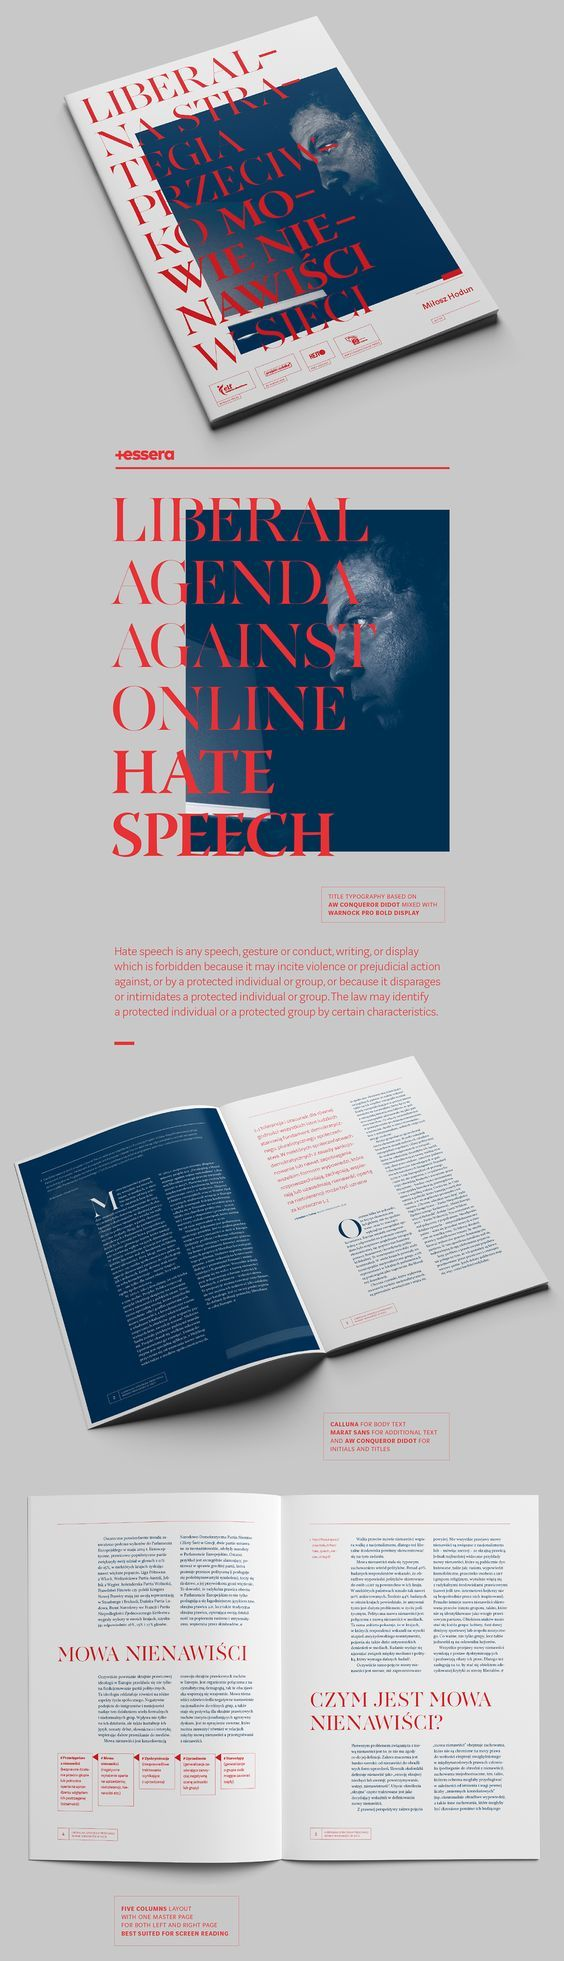 design + direction of the bruchure: